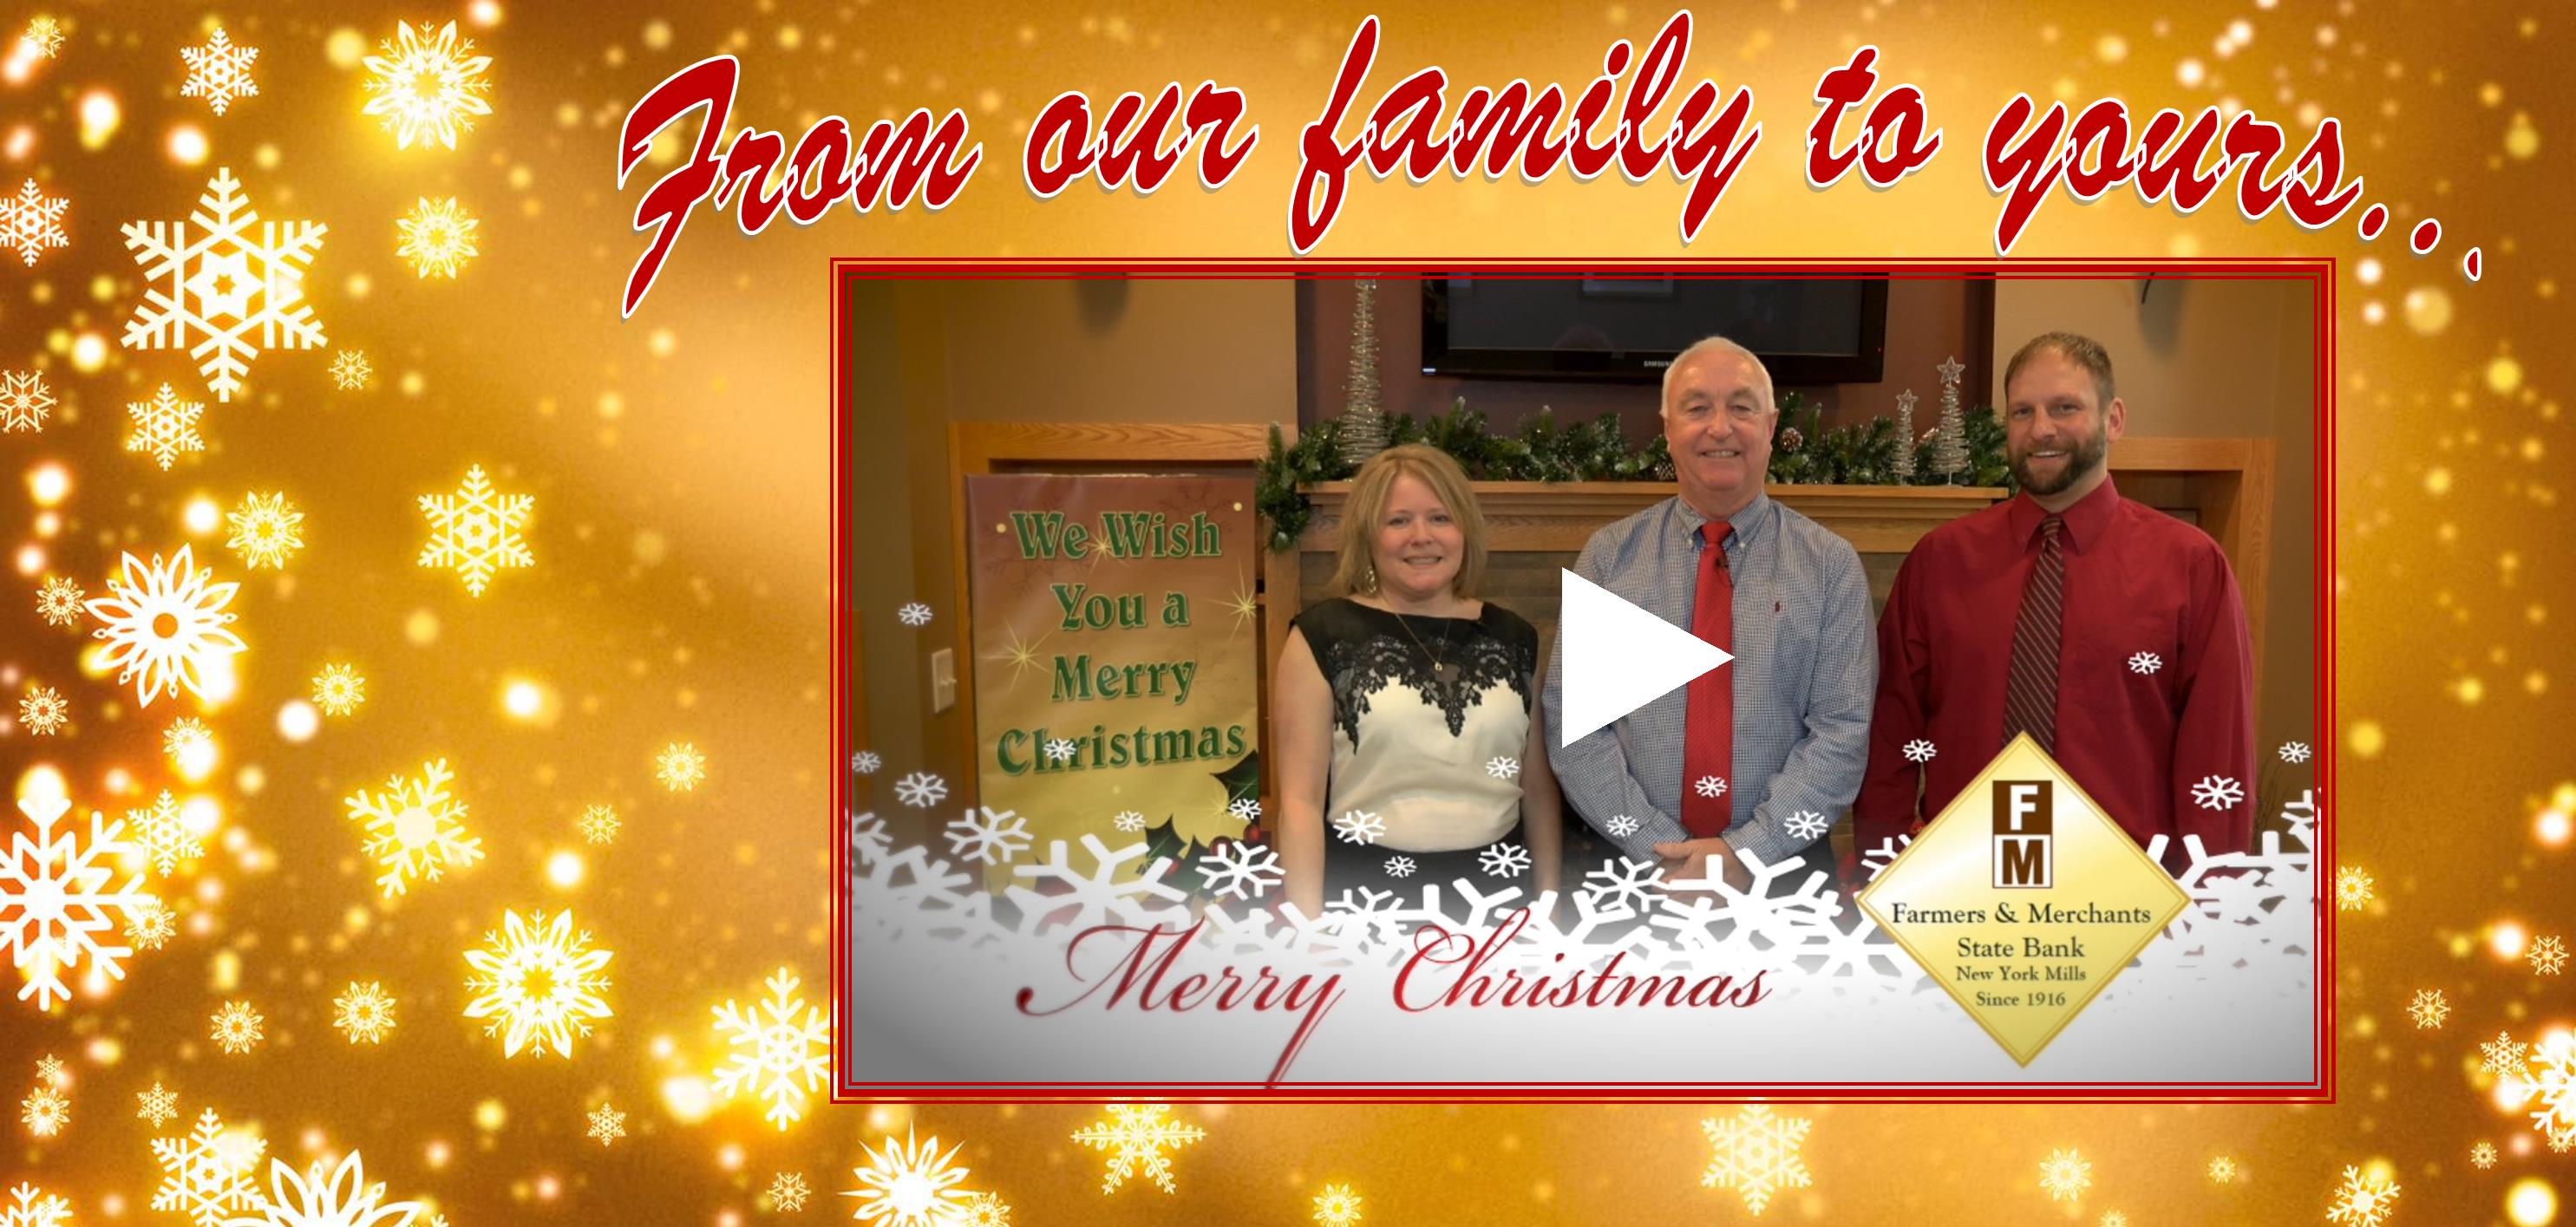 From our family to yours Christmas 2